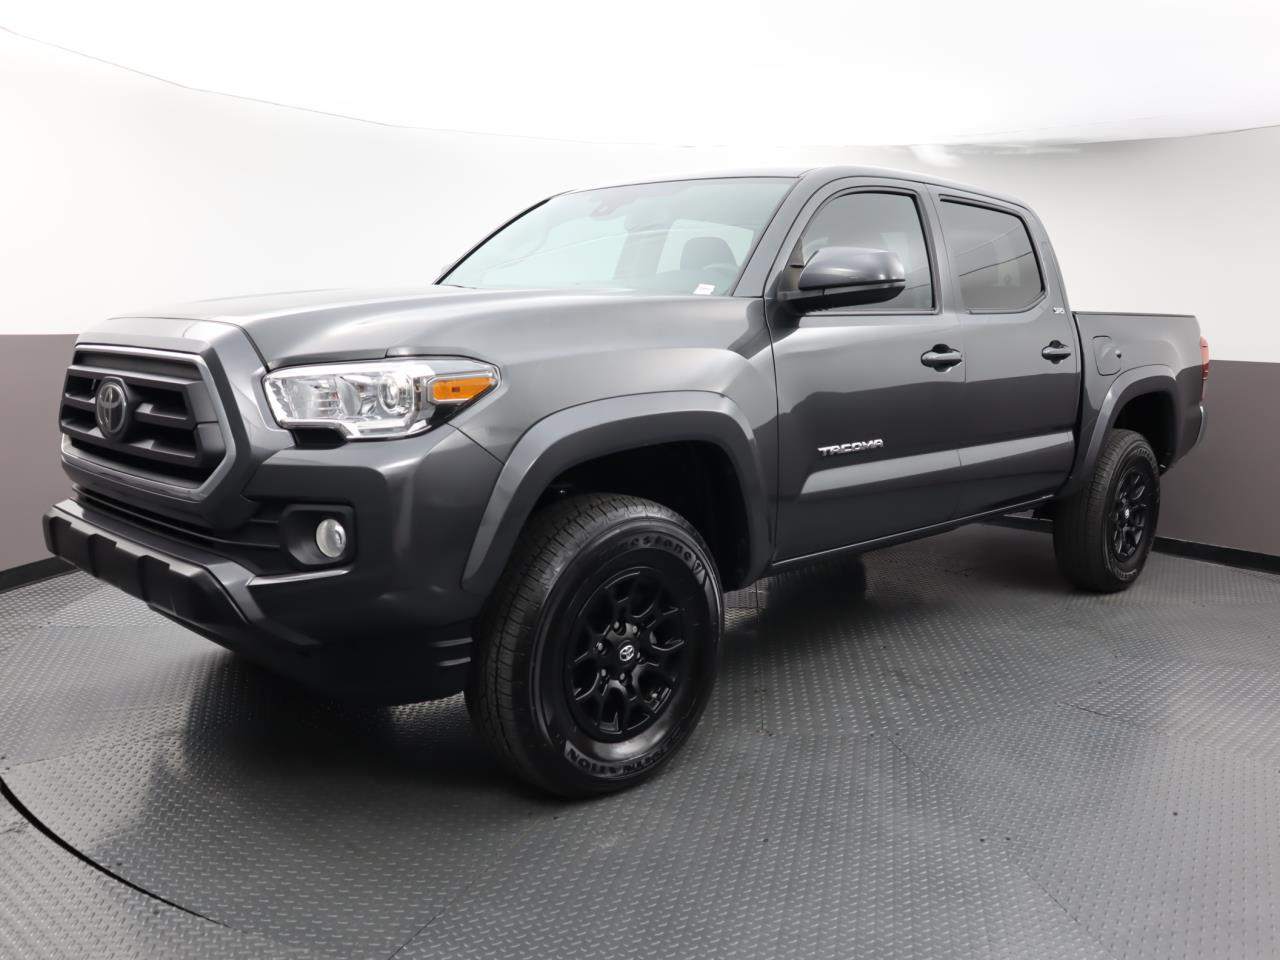 Used TOYOTA TACOMA-2WD 2020 WEST PALM SR5